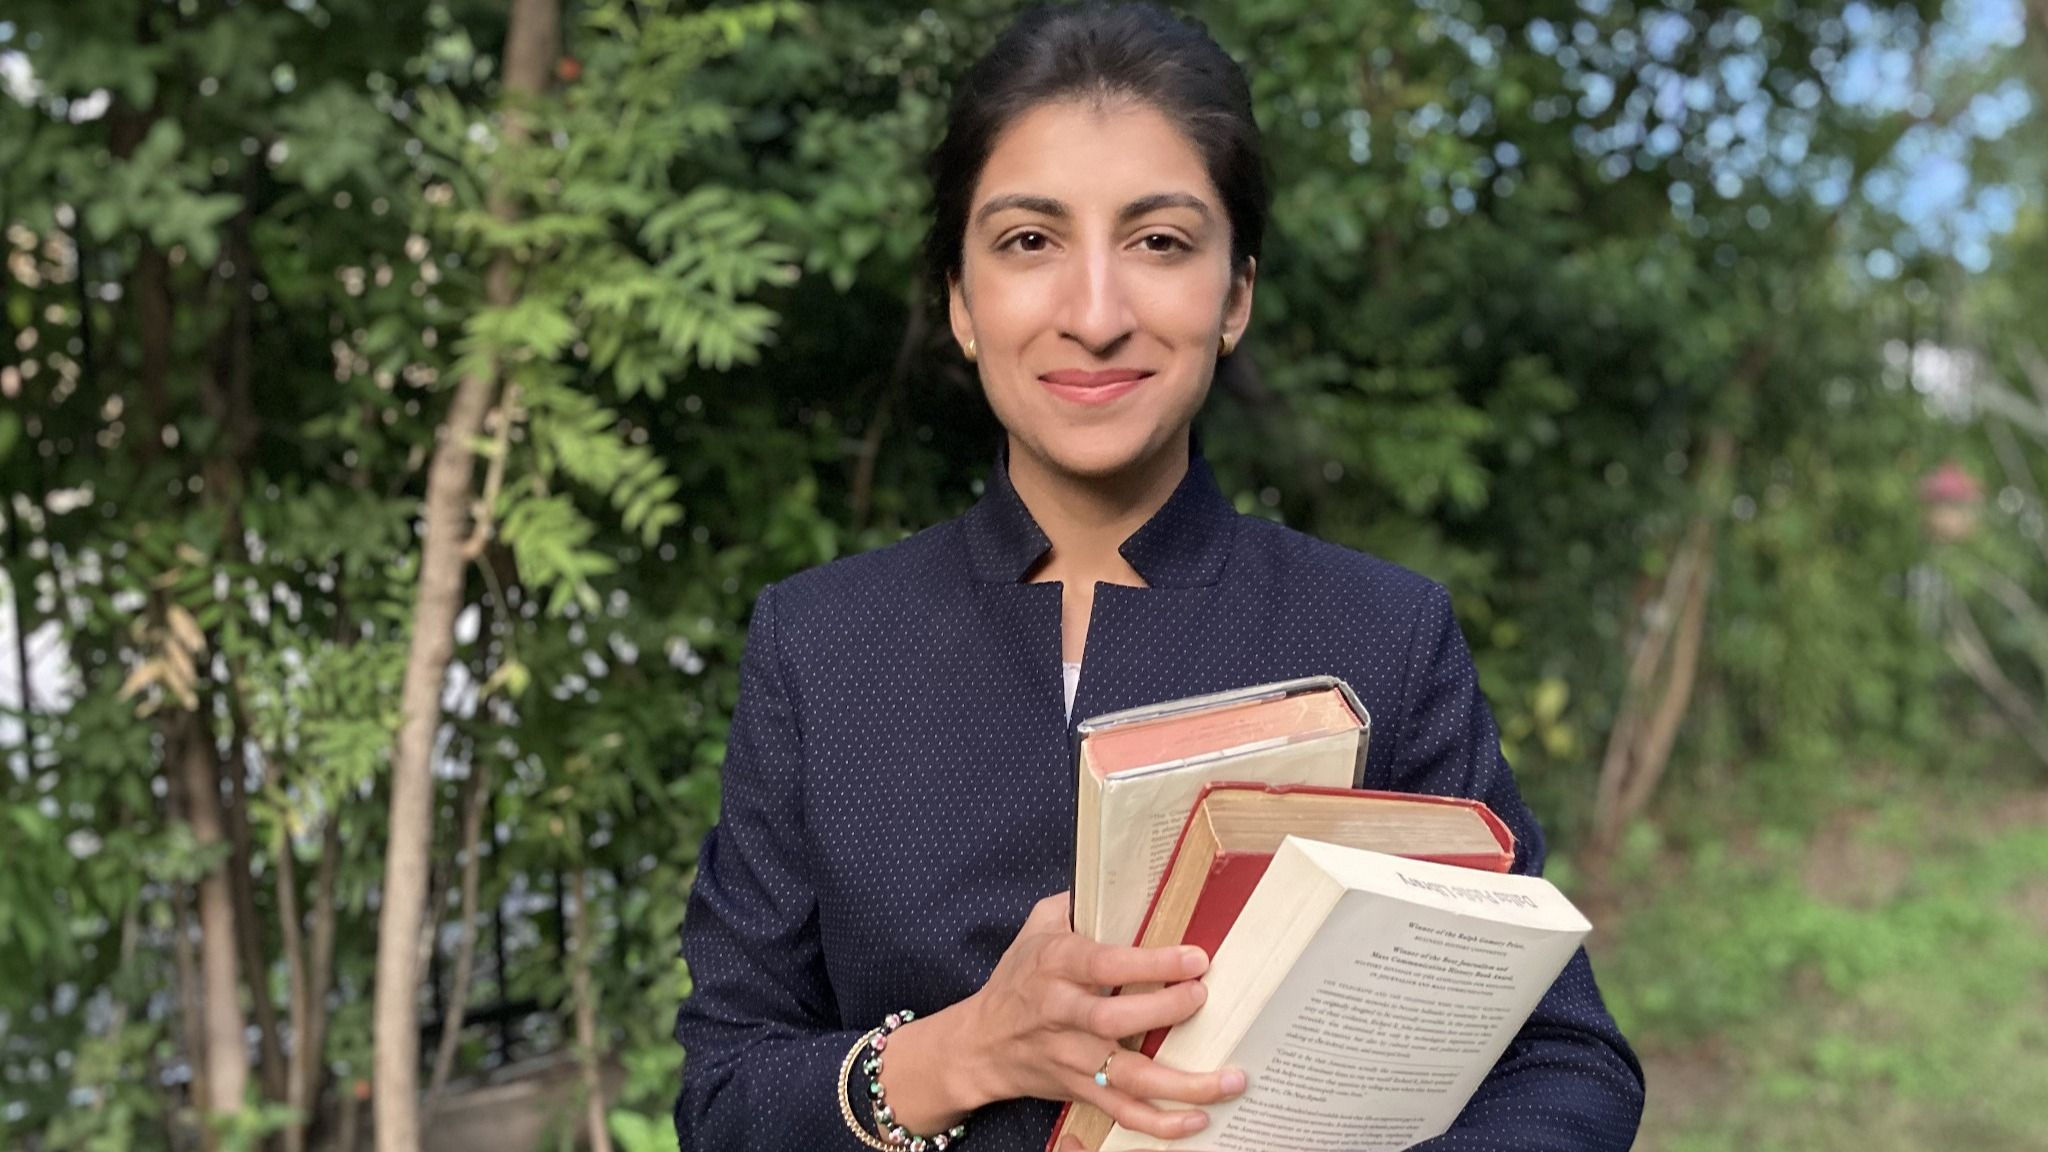 Lina Khan, Nominee for Commissioner of the Federal Trade Commission by President Joe Biden | Social Media